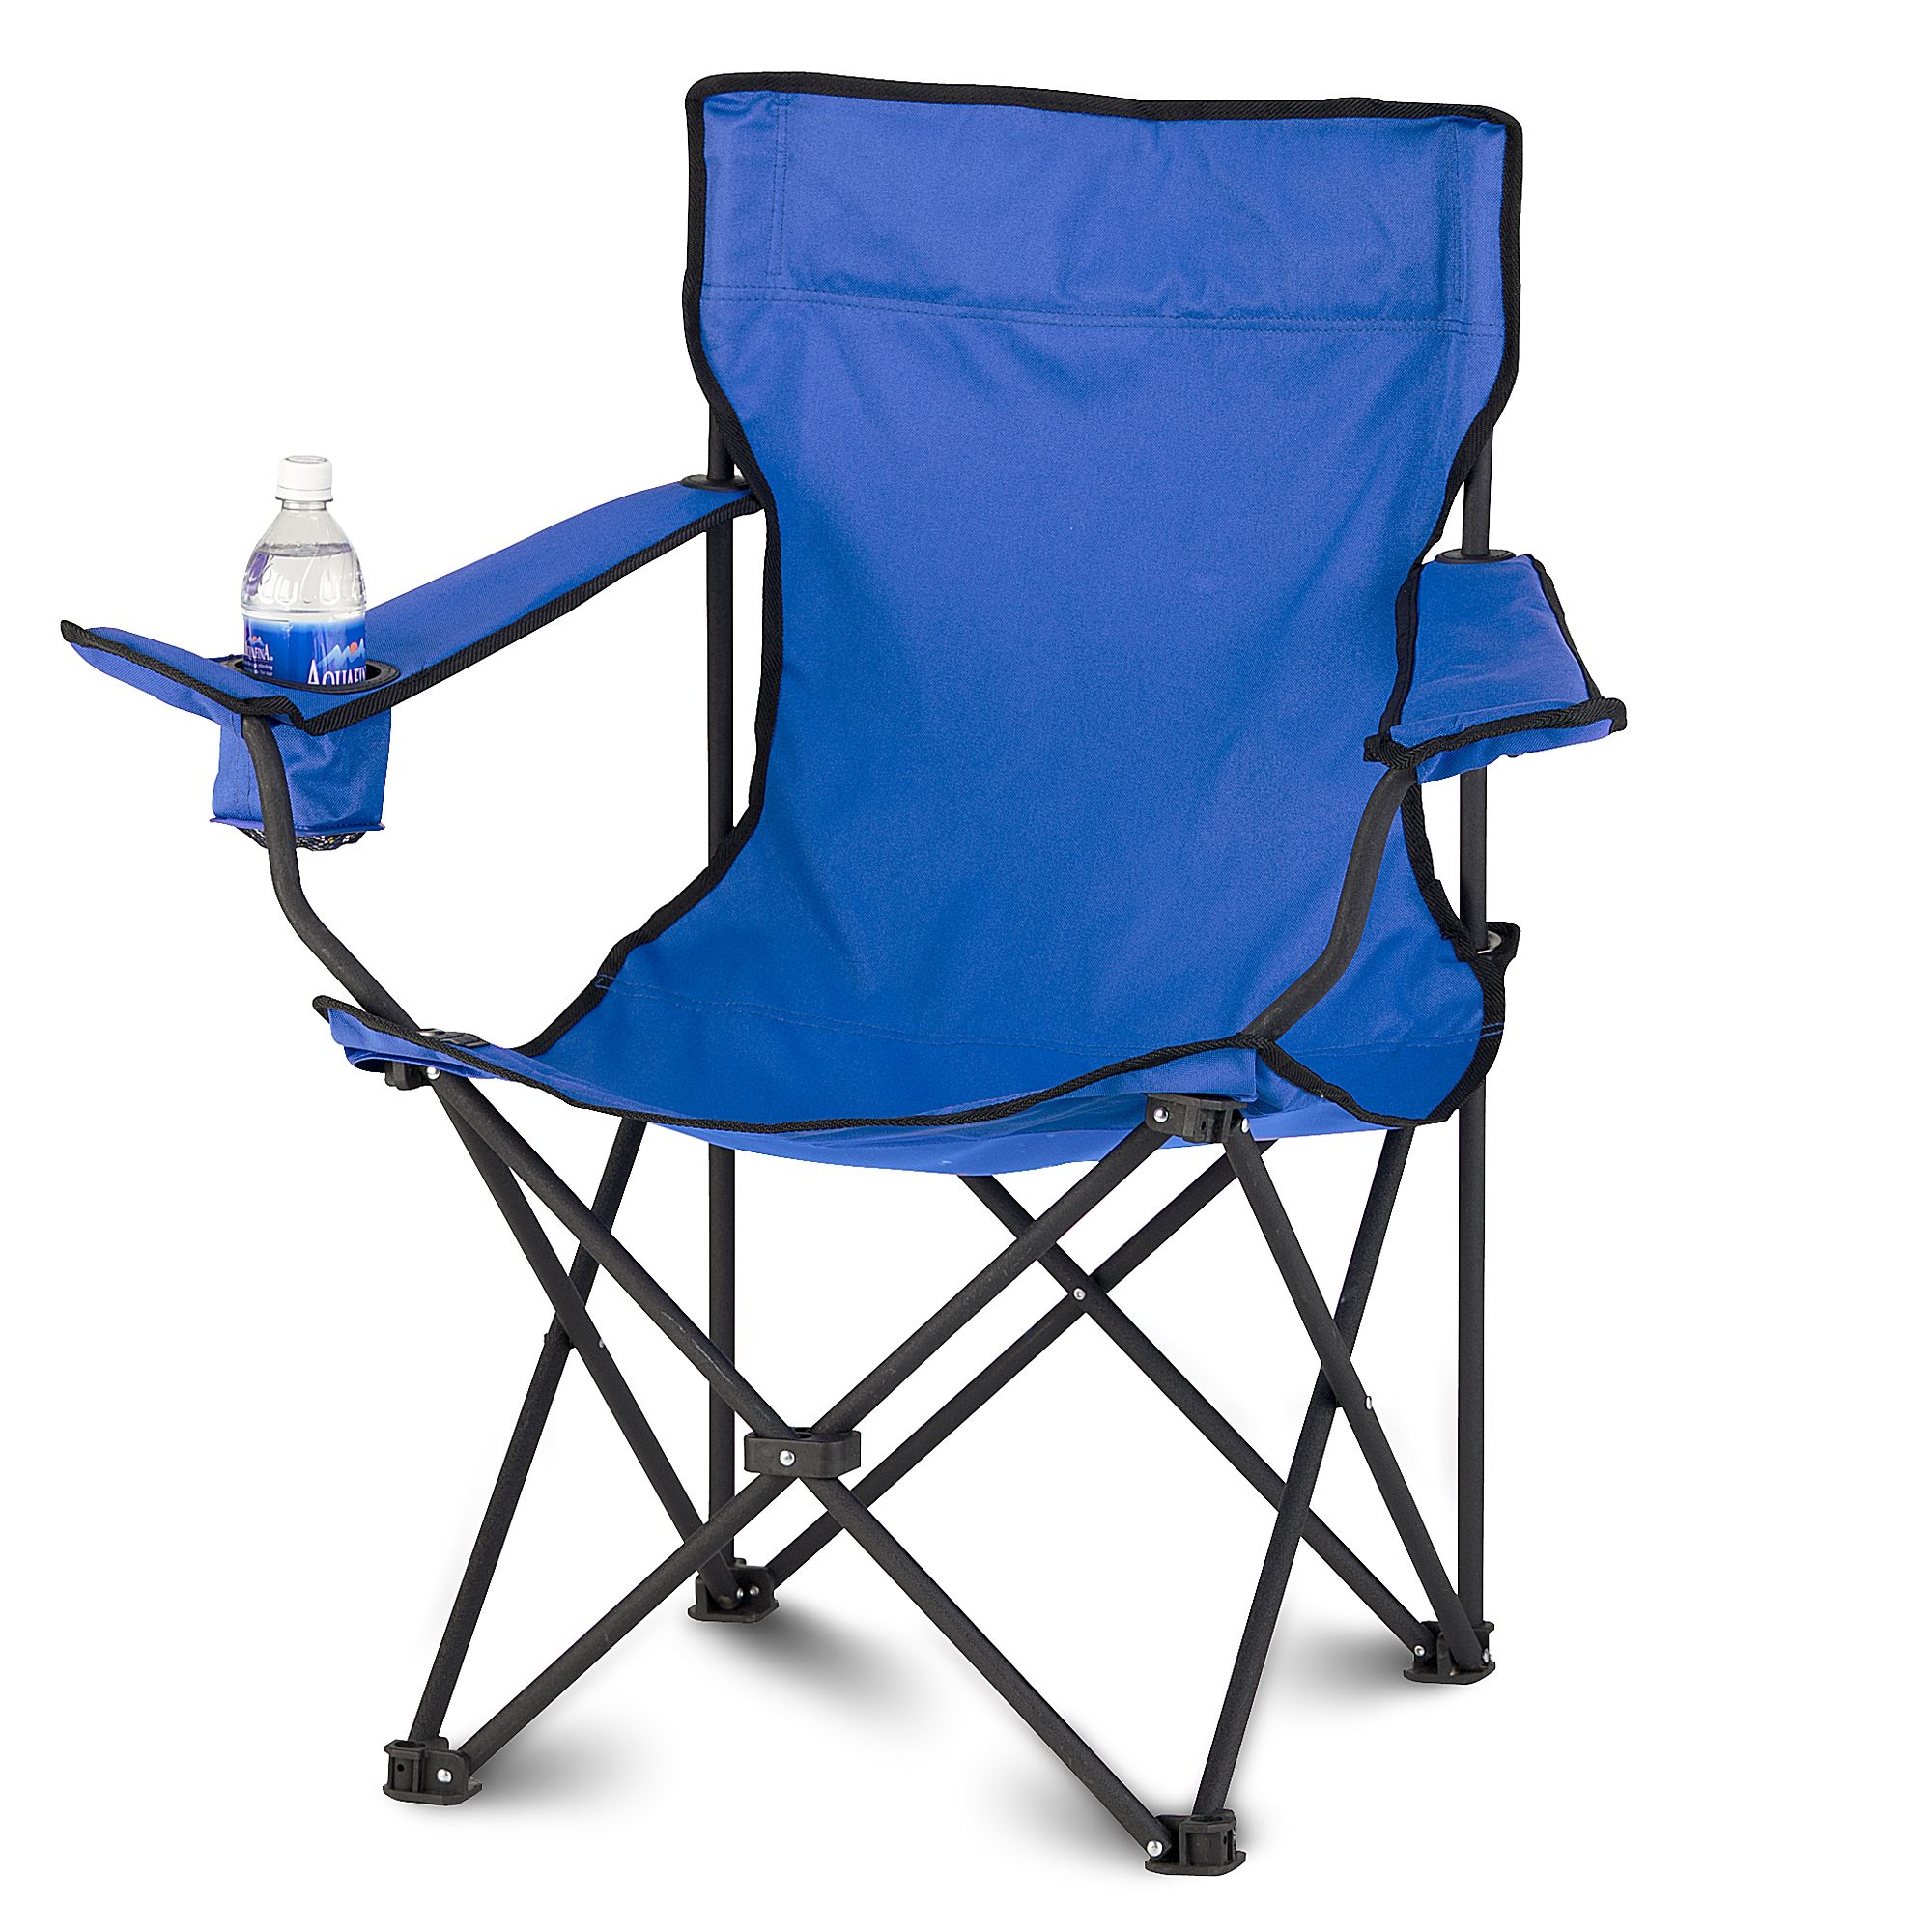 Surprising Bazaar Folding Camping Chair Bed Bath Beyond House In Ibusinesslaw Wood Chair Design Ideas Ibusinesslaworg